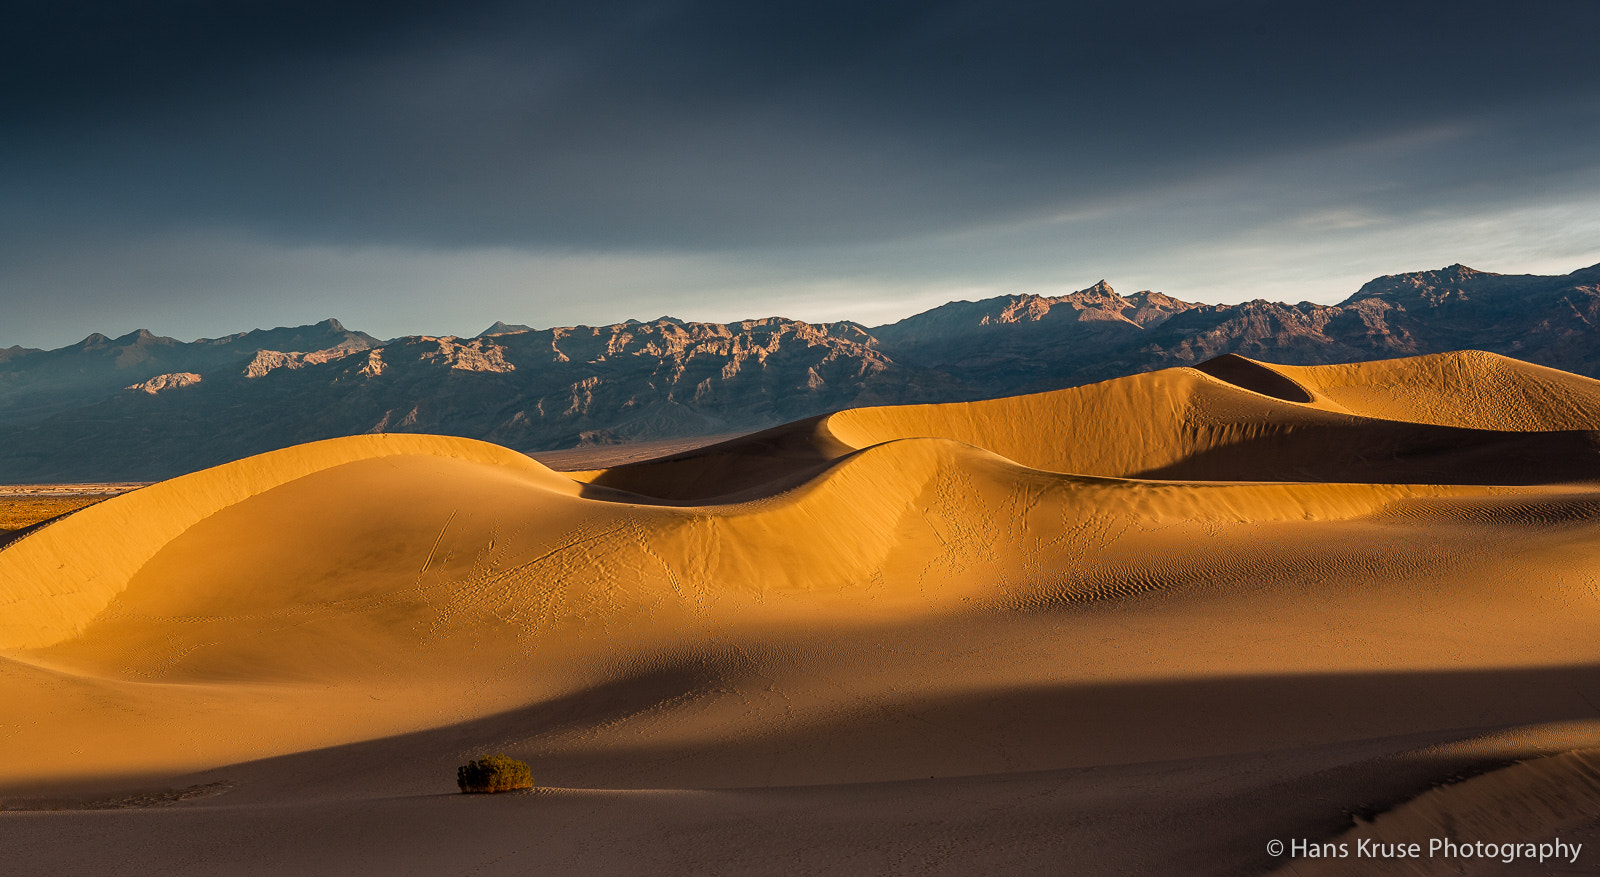 Photograph Morning light in Death Valley by Hans Kruse on 500px